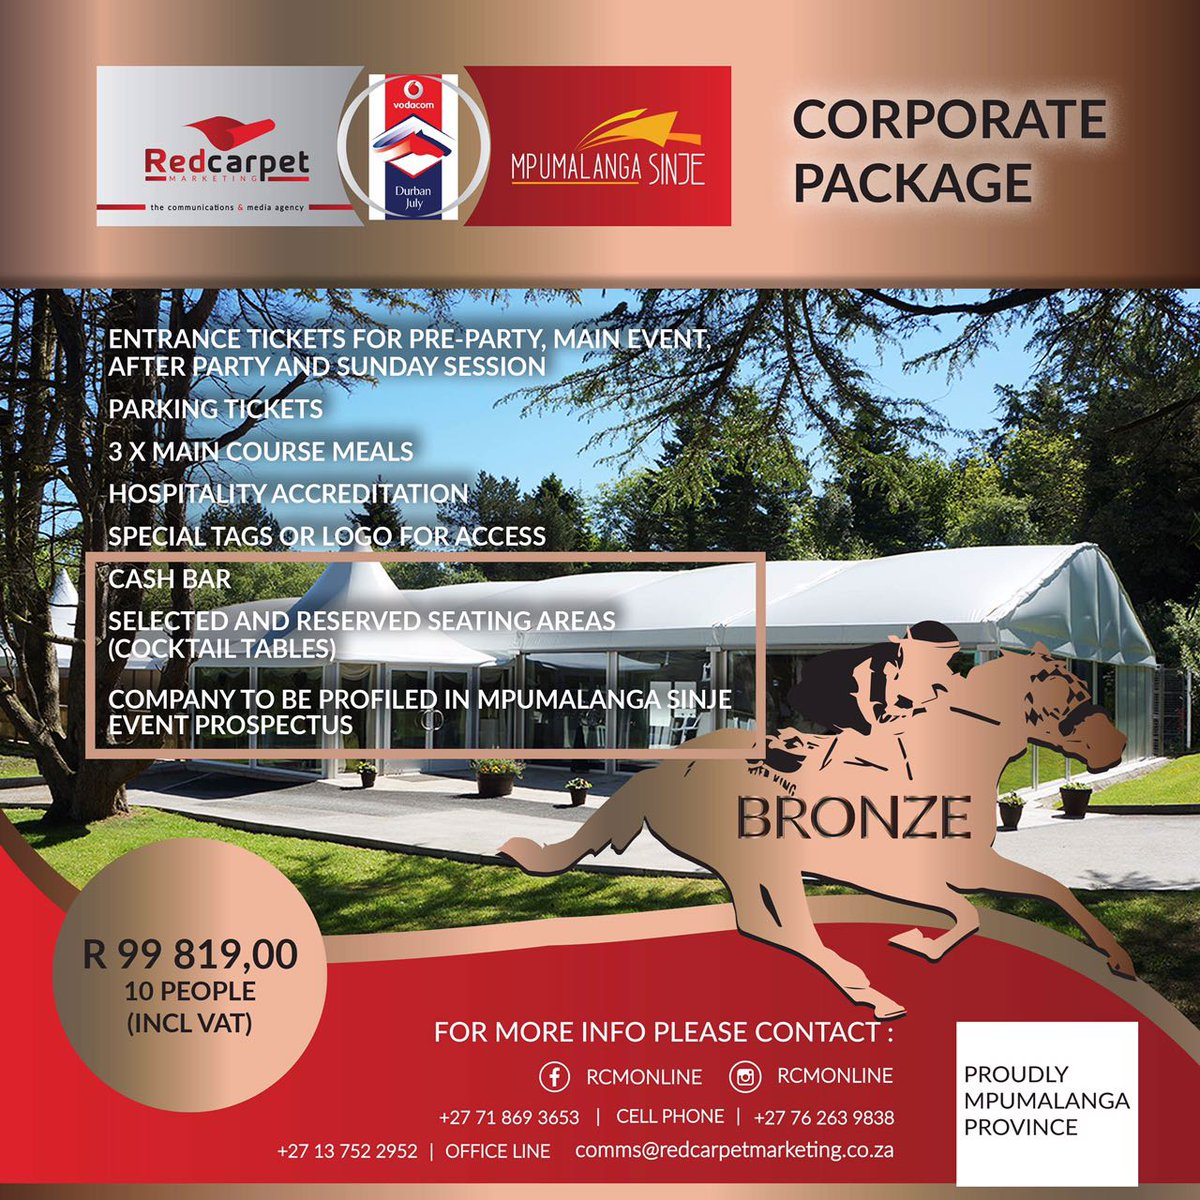 Red Carpet Marketing On Twitter Mpumalanga Sinje Our Corporate Packages For The 2017 Vodacom Durban July Vdj17 Rcmonline Hauteculture Hautecouture